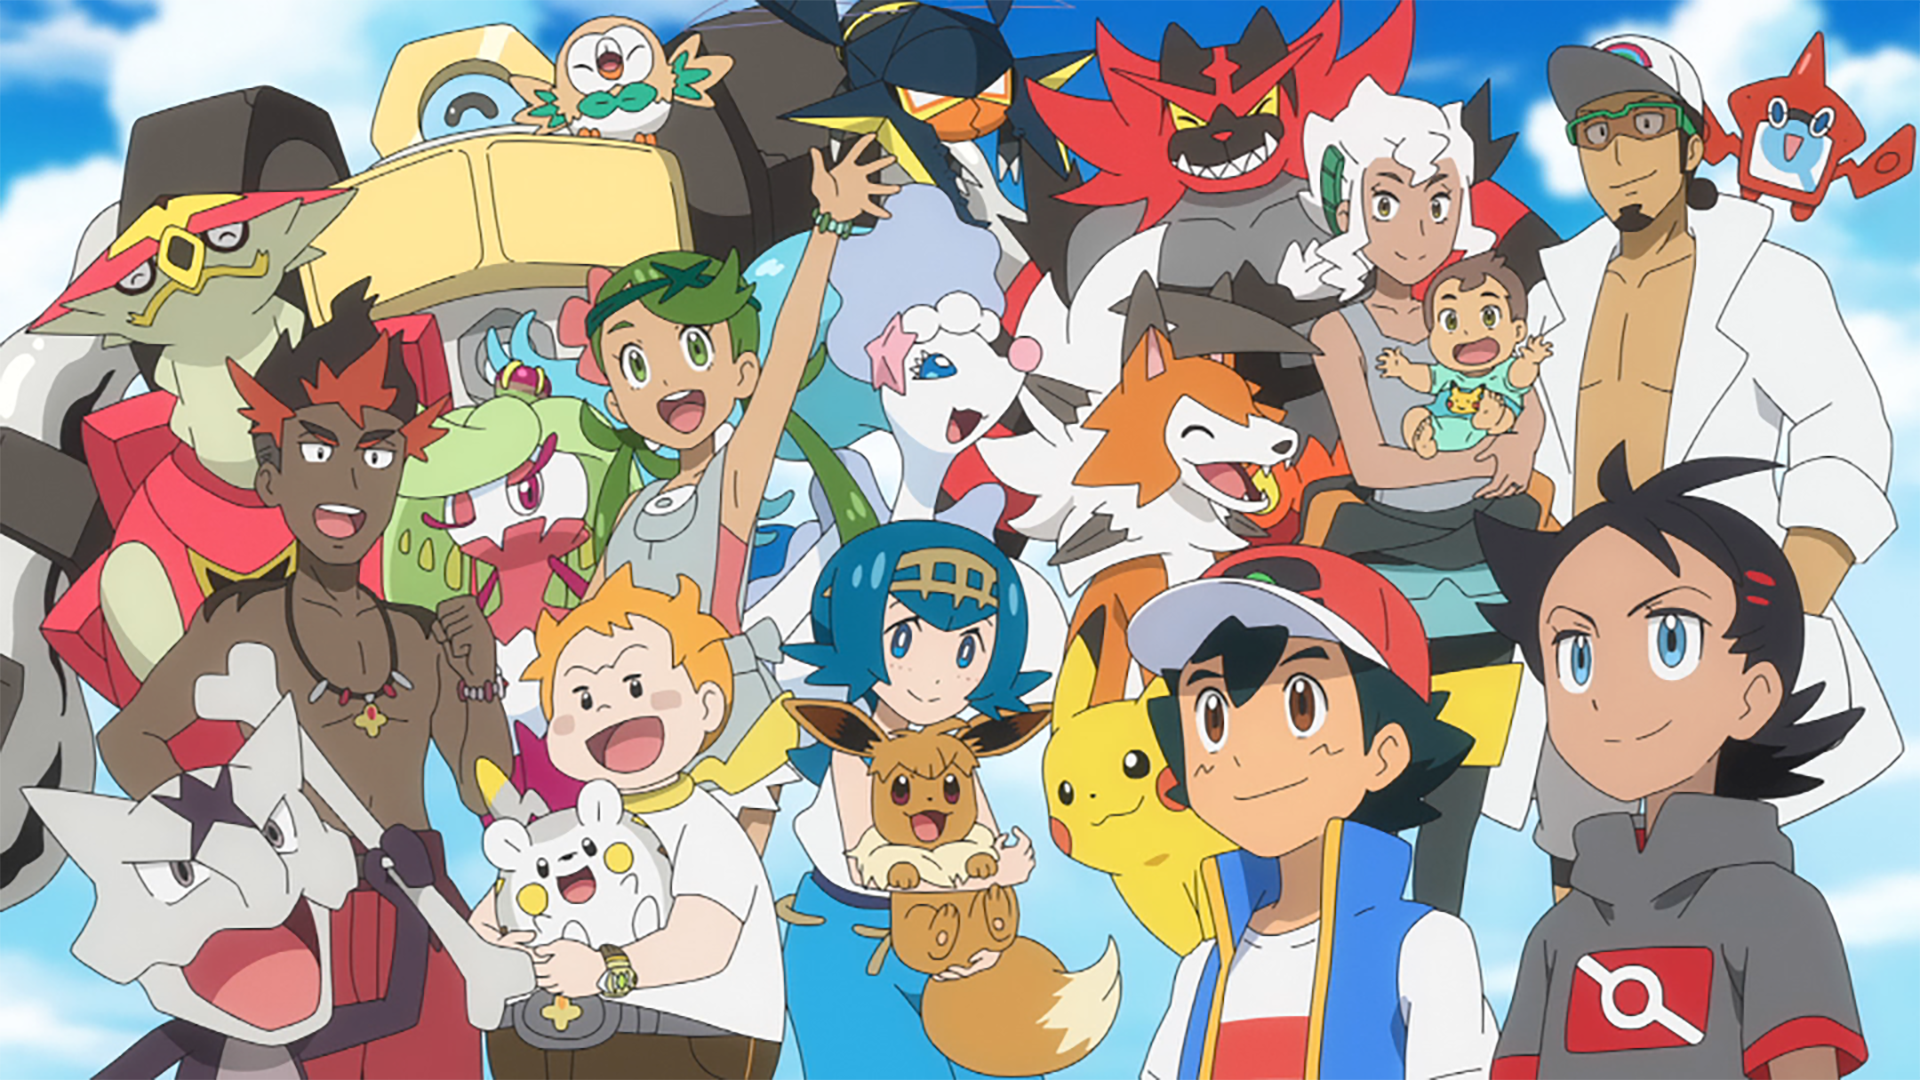 ALola Pokemon JOurneys